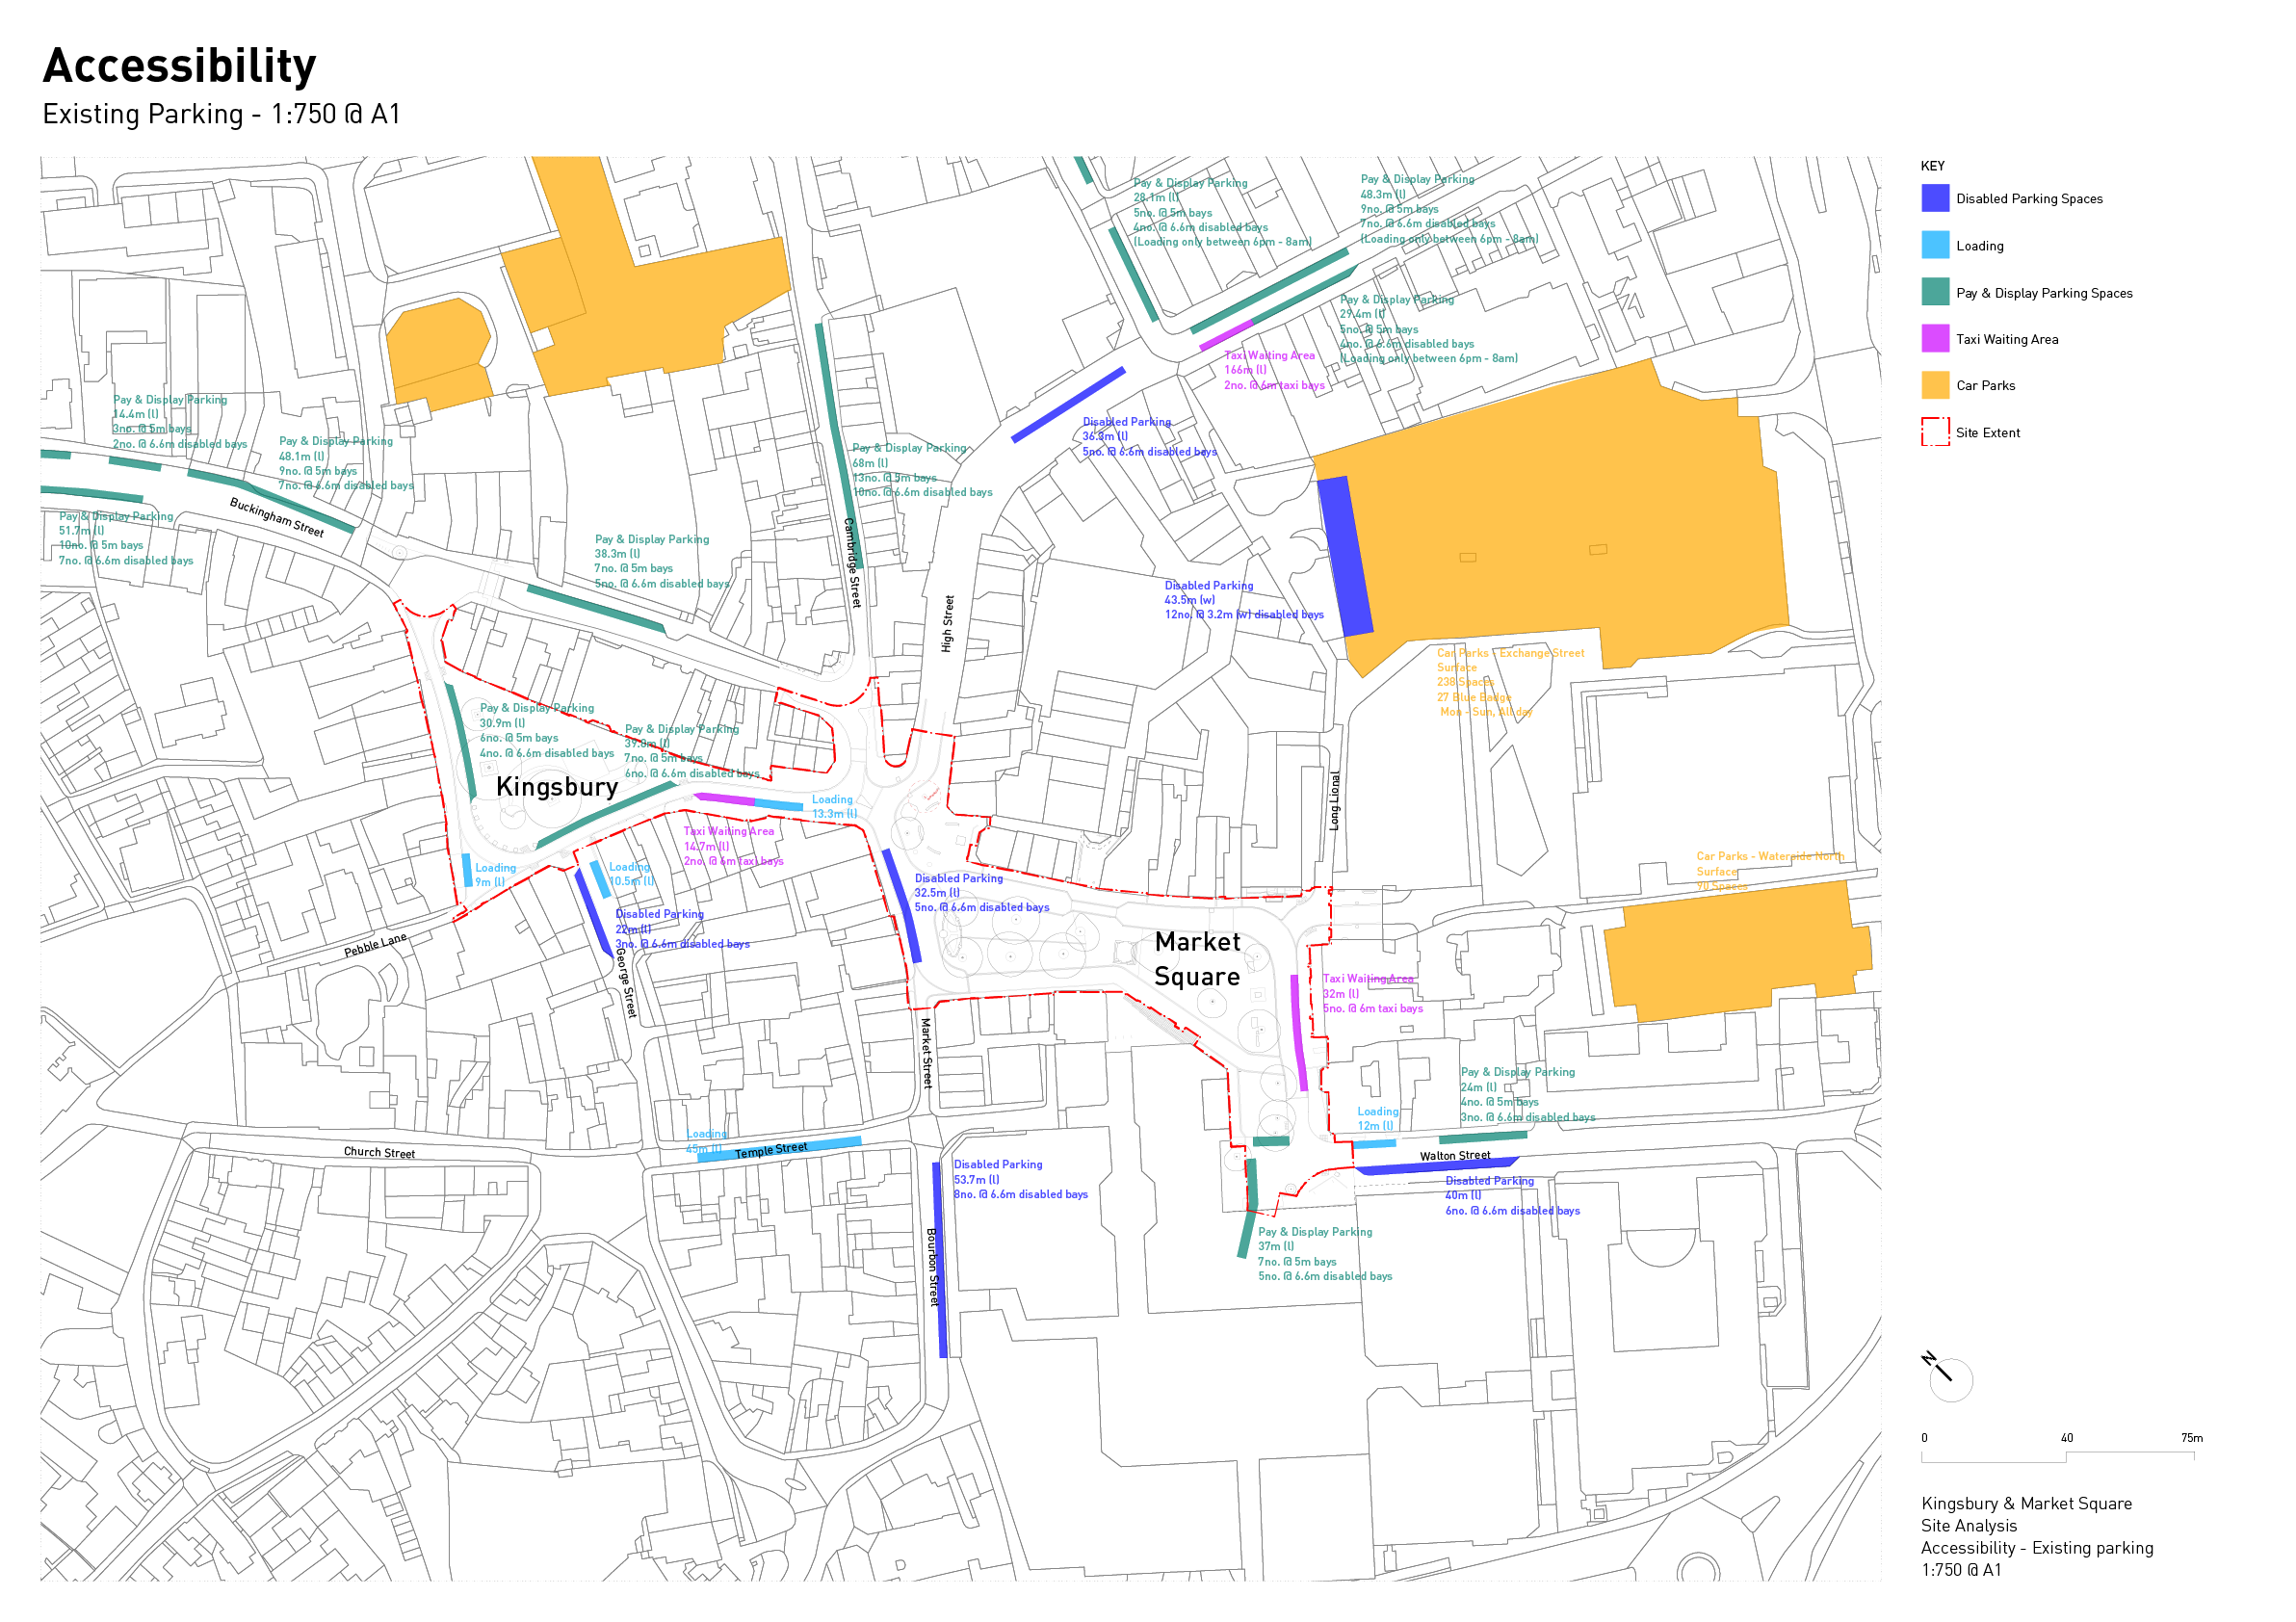 Plan diagram showing the existing parking provision in and near to the site areas